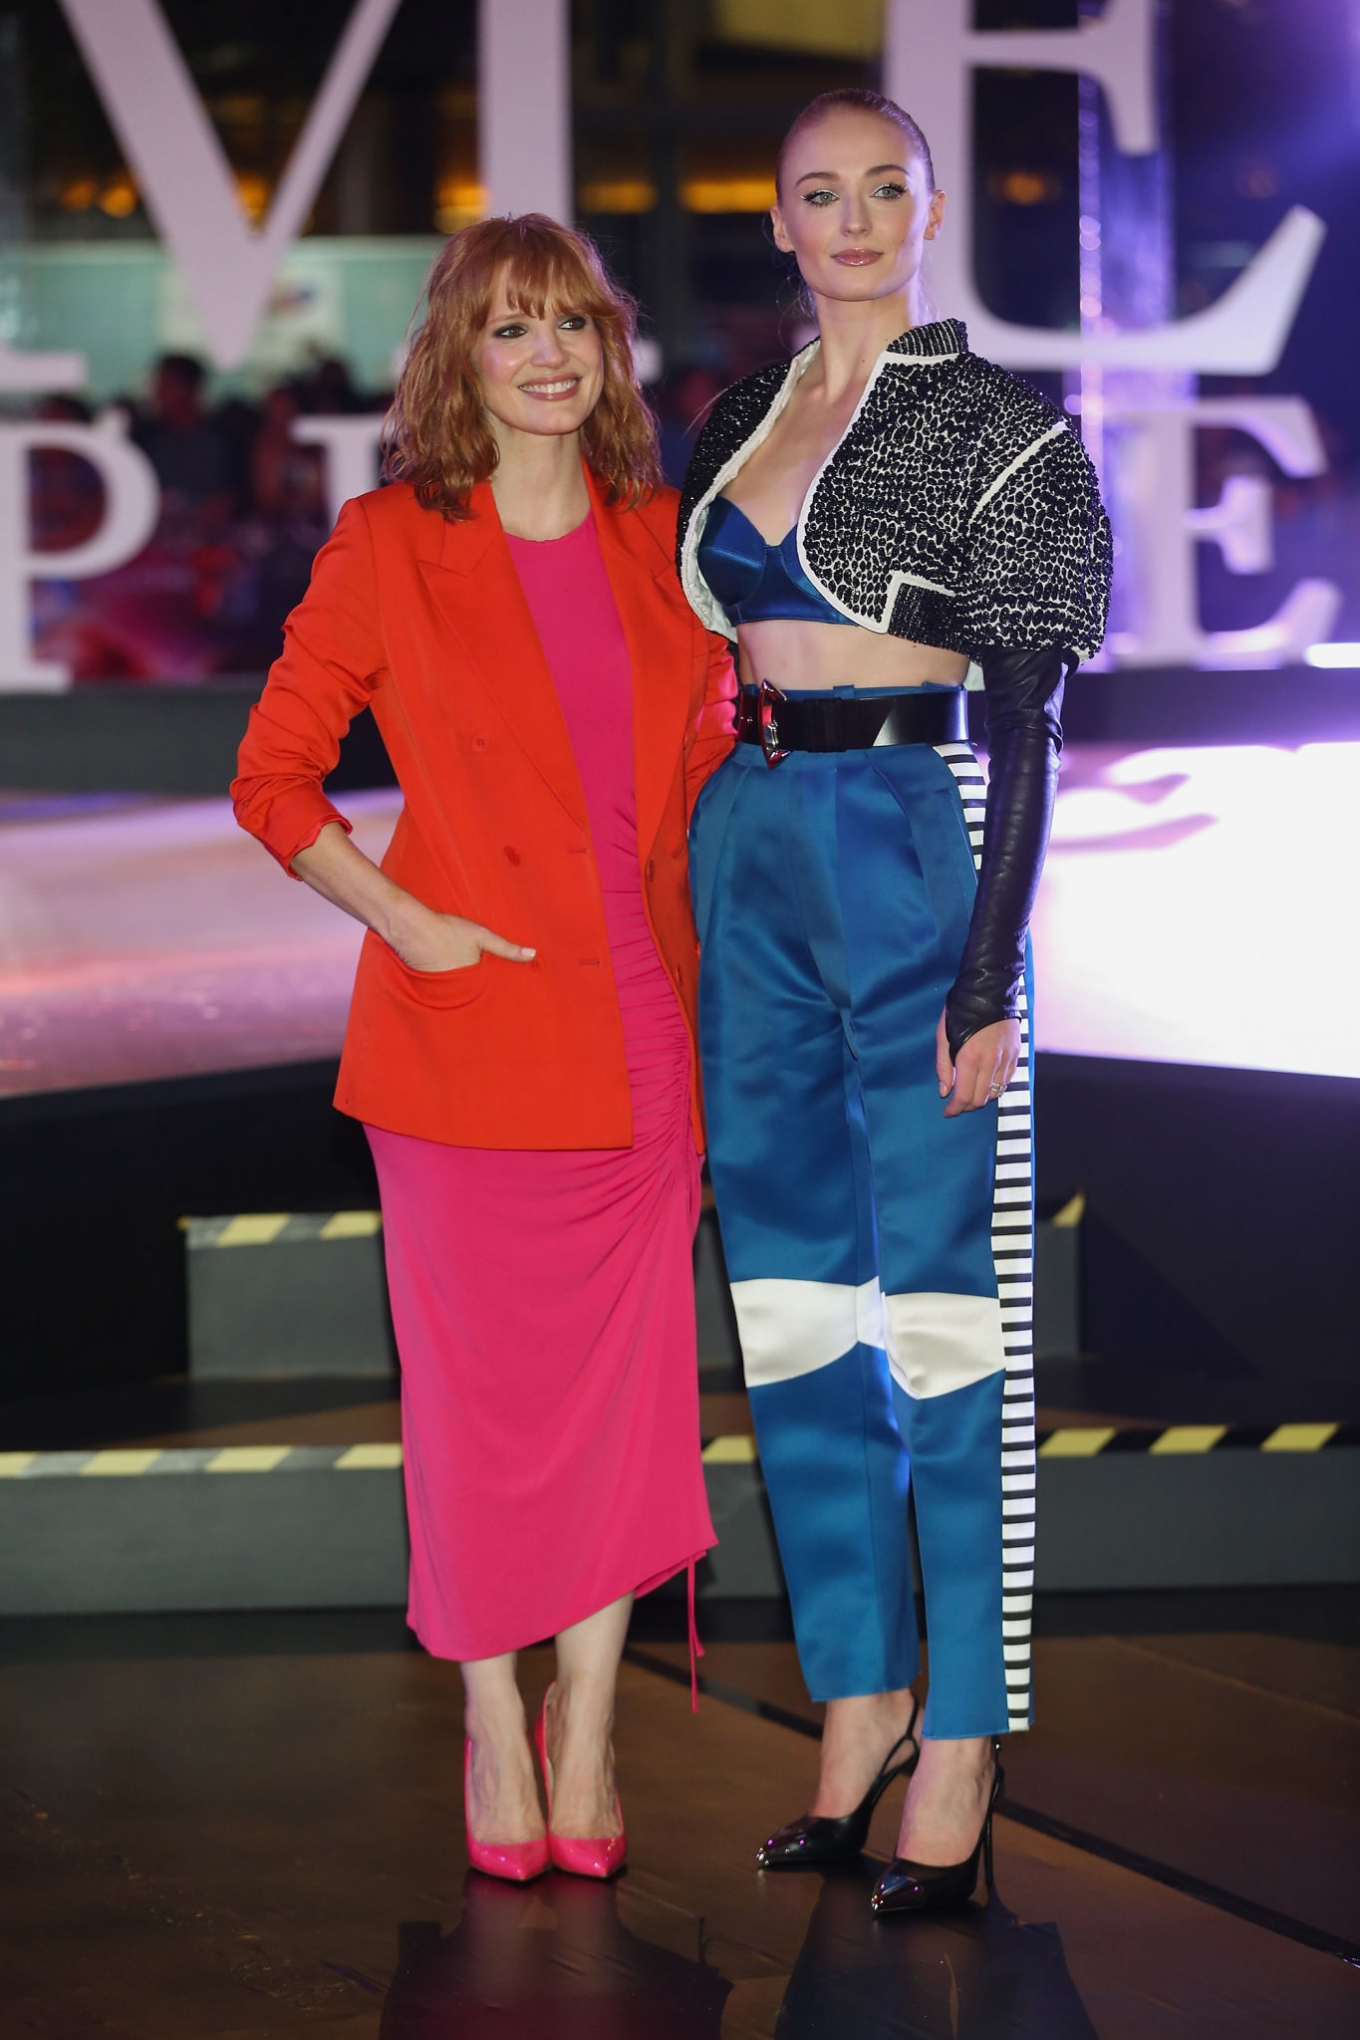 Jessica Chastain and Sophie Turner - 'X-Men Dark Phoenix' Fan Event in Mexico